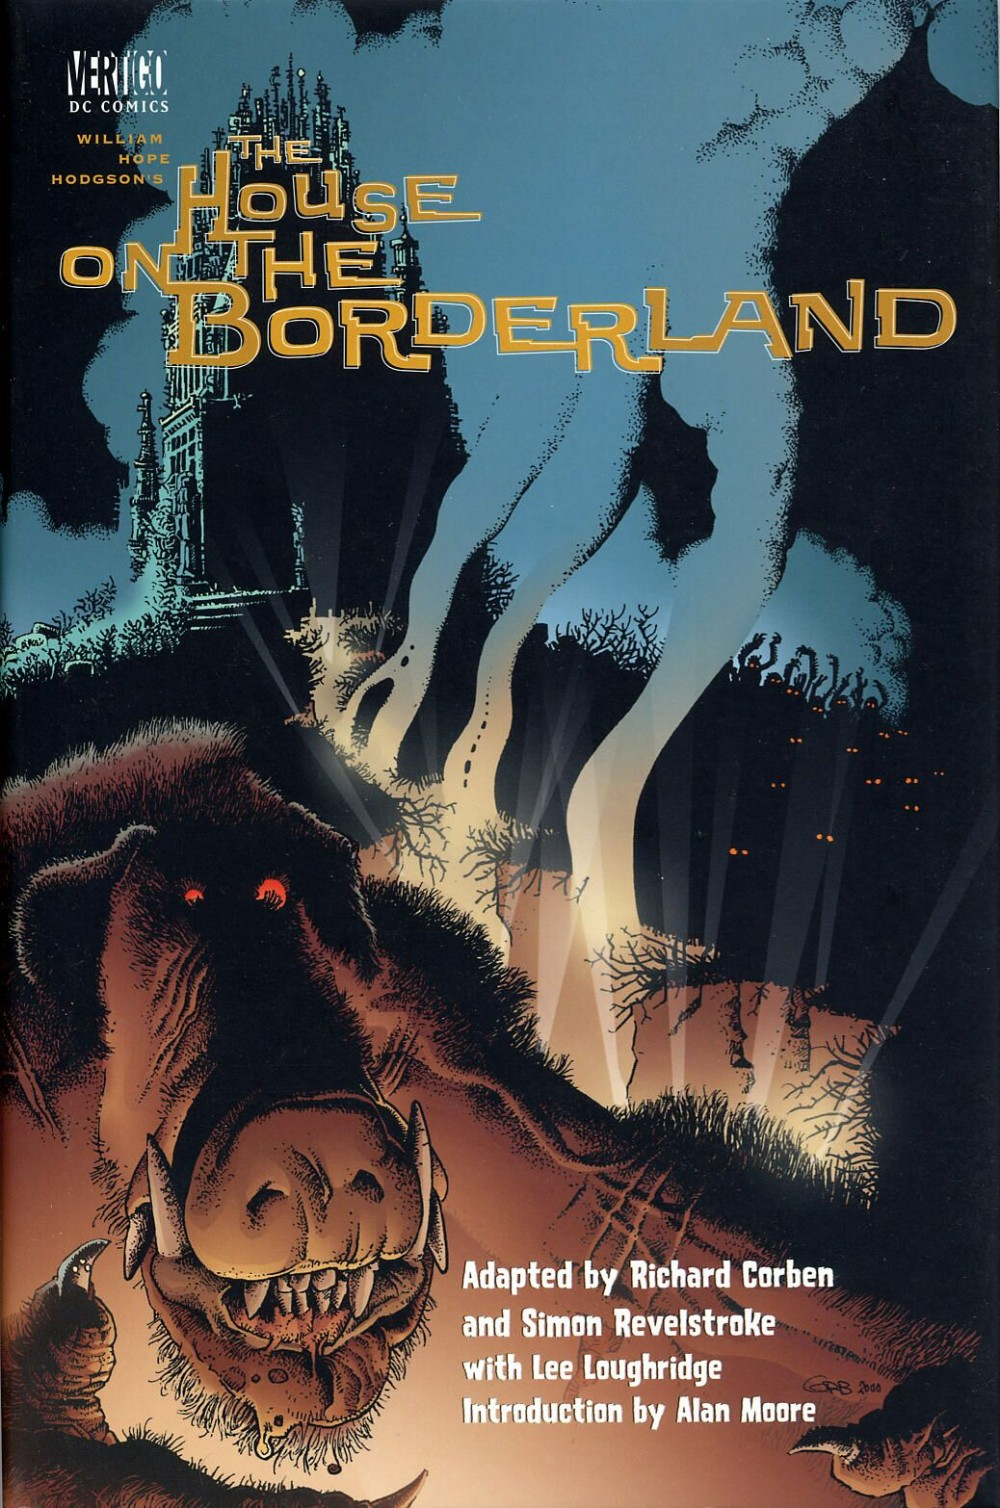 House On The Borderland [DC Vertigo] OS1 0001a.jpg